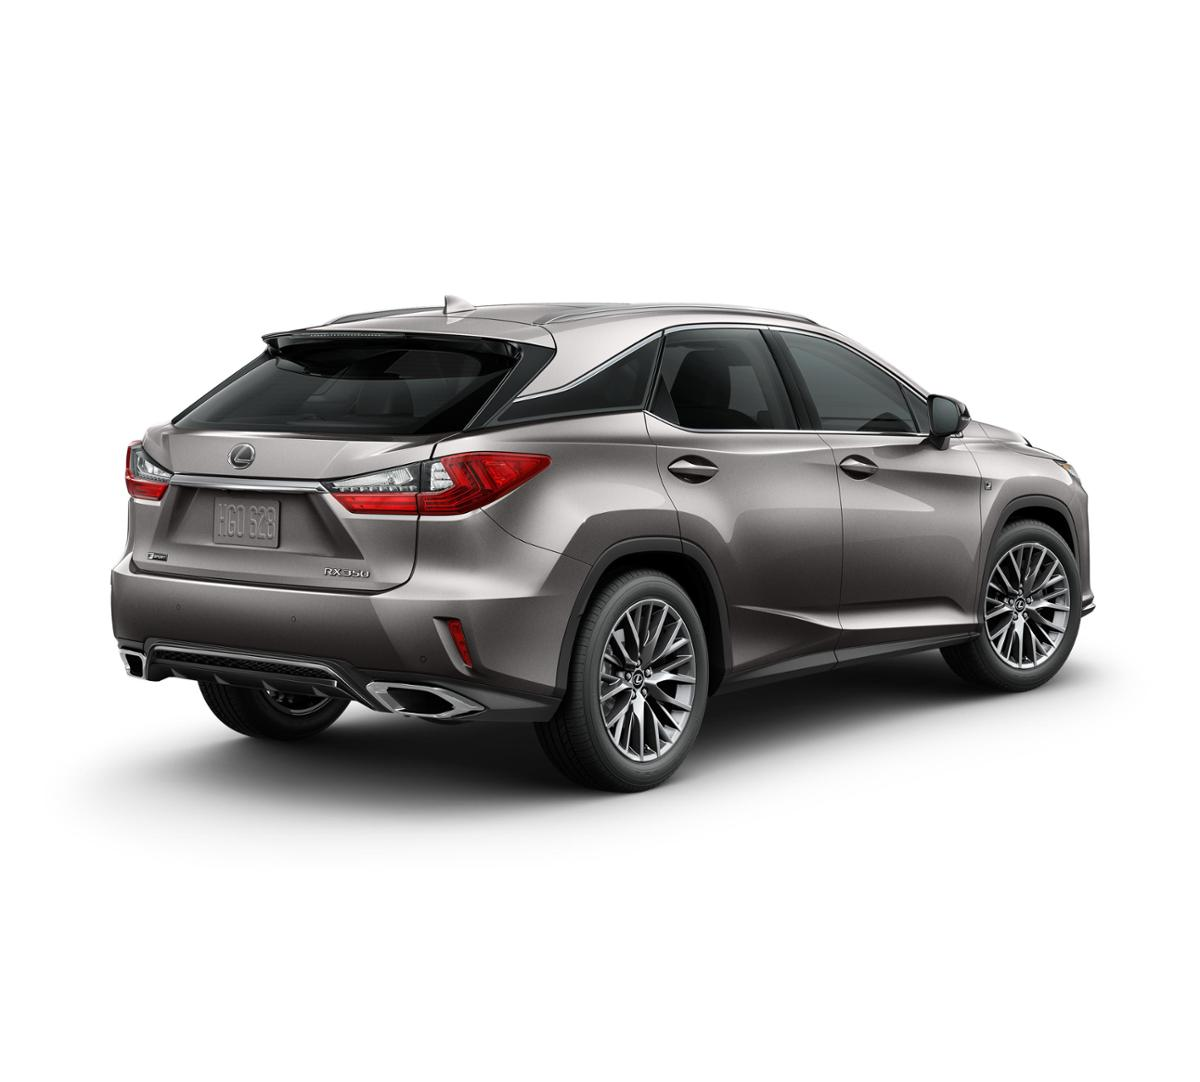 2019 Atomic Silver RX 350 F SPORT Lexus RX 350 For Sale In